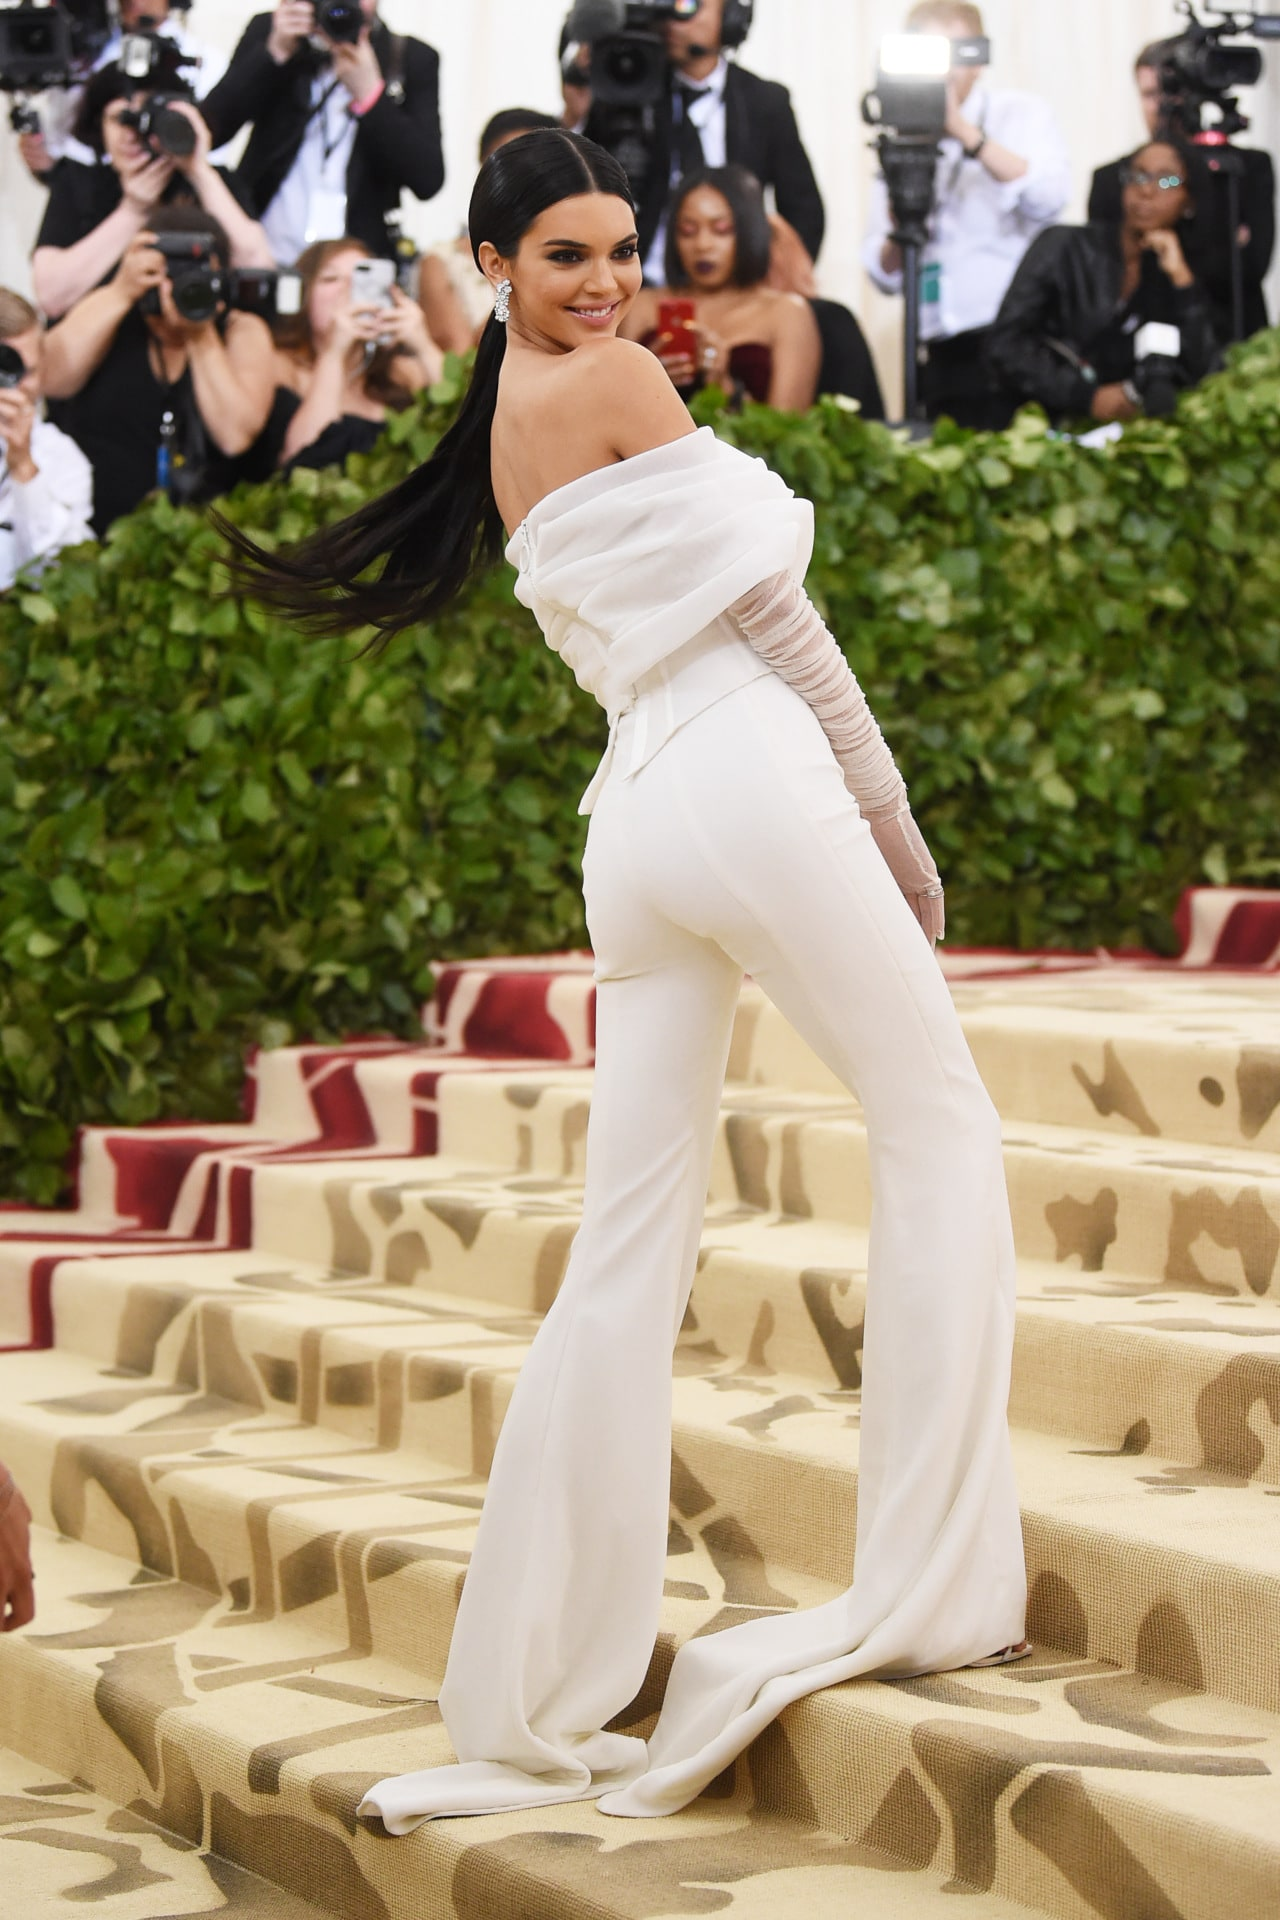 Kendall Jenner in Off-White at the 2018 Met Gala. Image credit: Getty Images